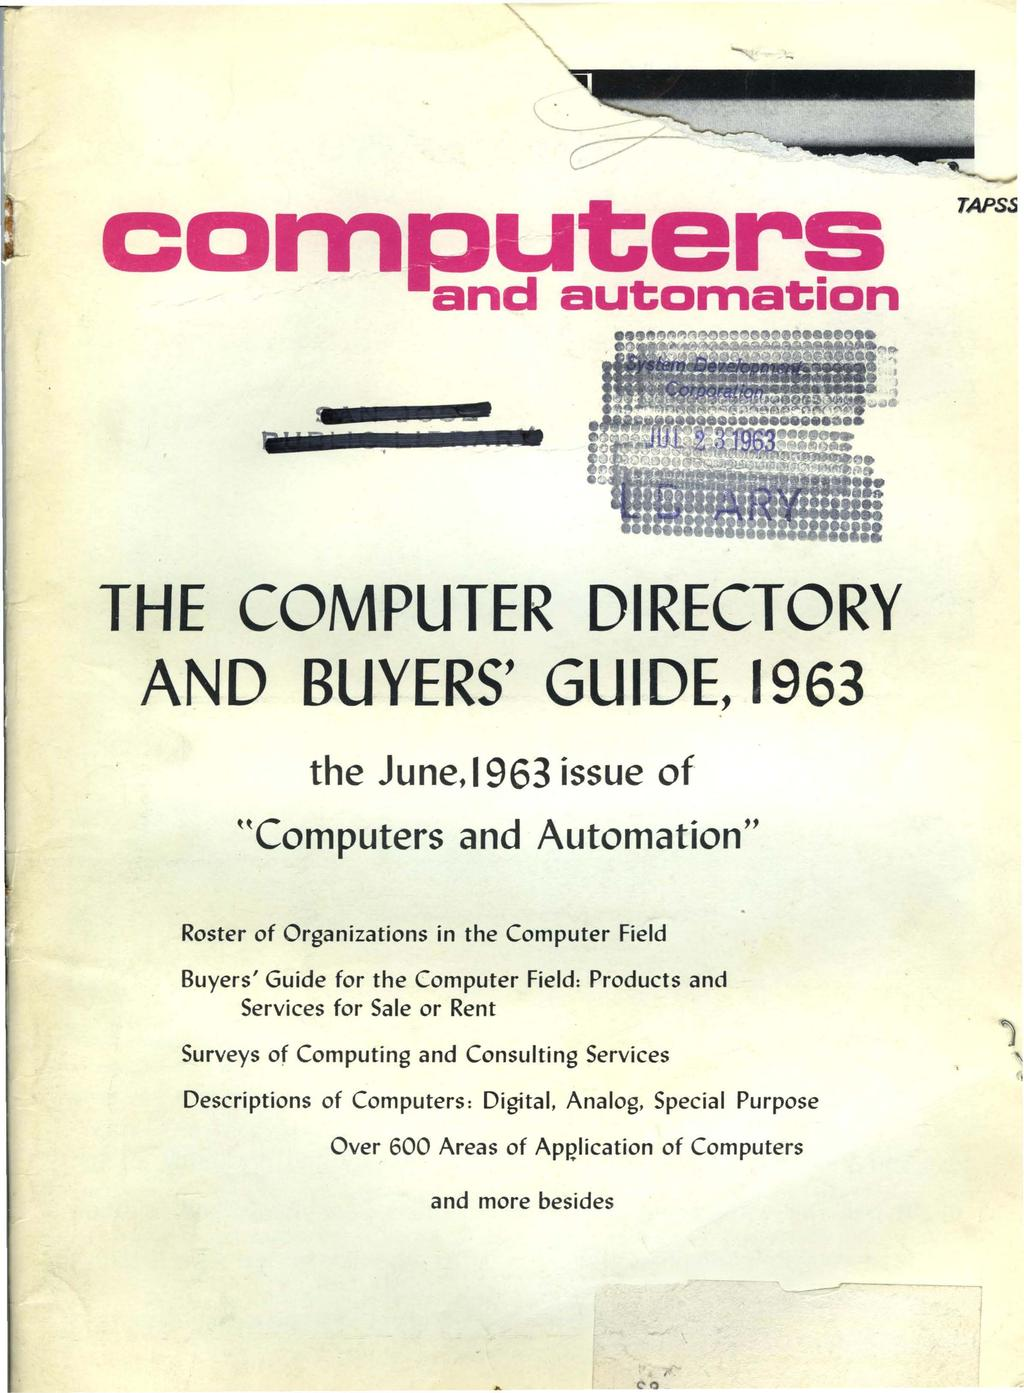 "I) CD TAPSS THE COMPUTER DIRECTORY AND BUYERS' GUIDE, 1963 the June, 1963 issue of HComputers and Automation"" Roster of Organizations in the Computer Field Buyers' Guide for the Computer Field:"